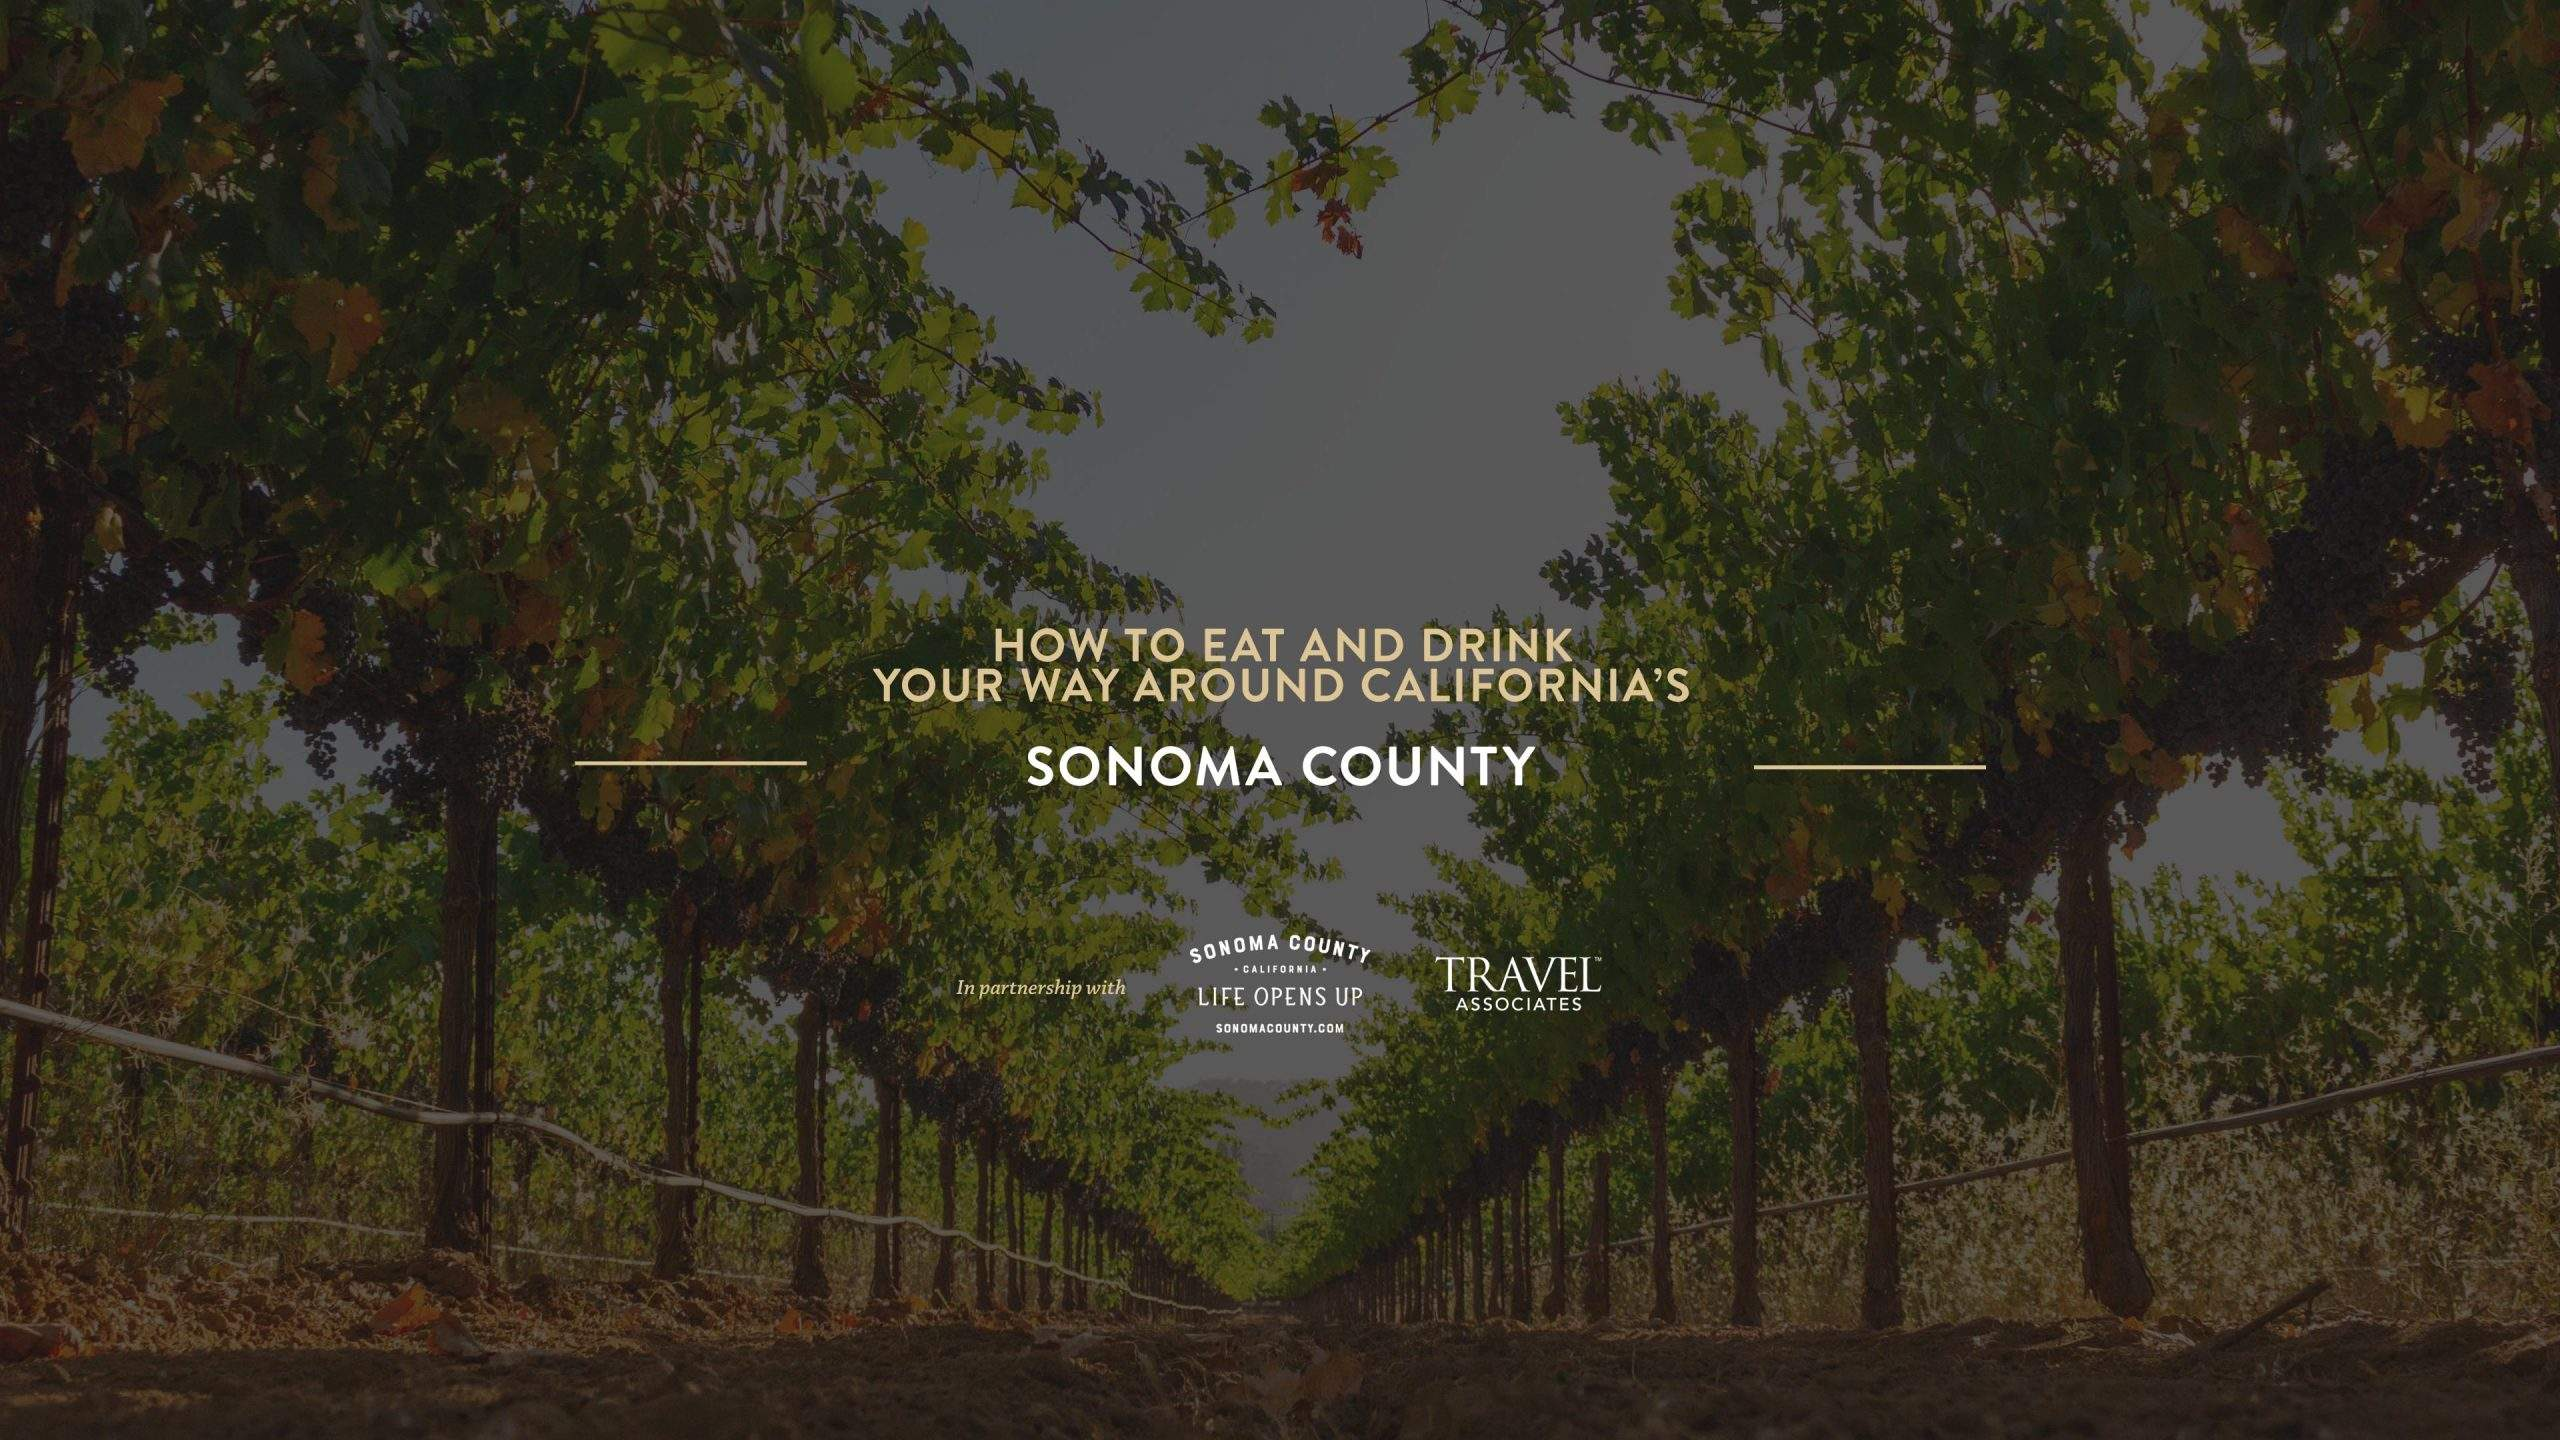 How to Eat and Drink Your Way Around California's Sonoma County